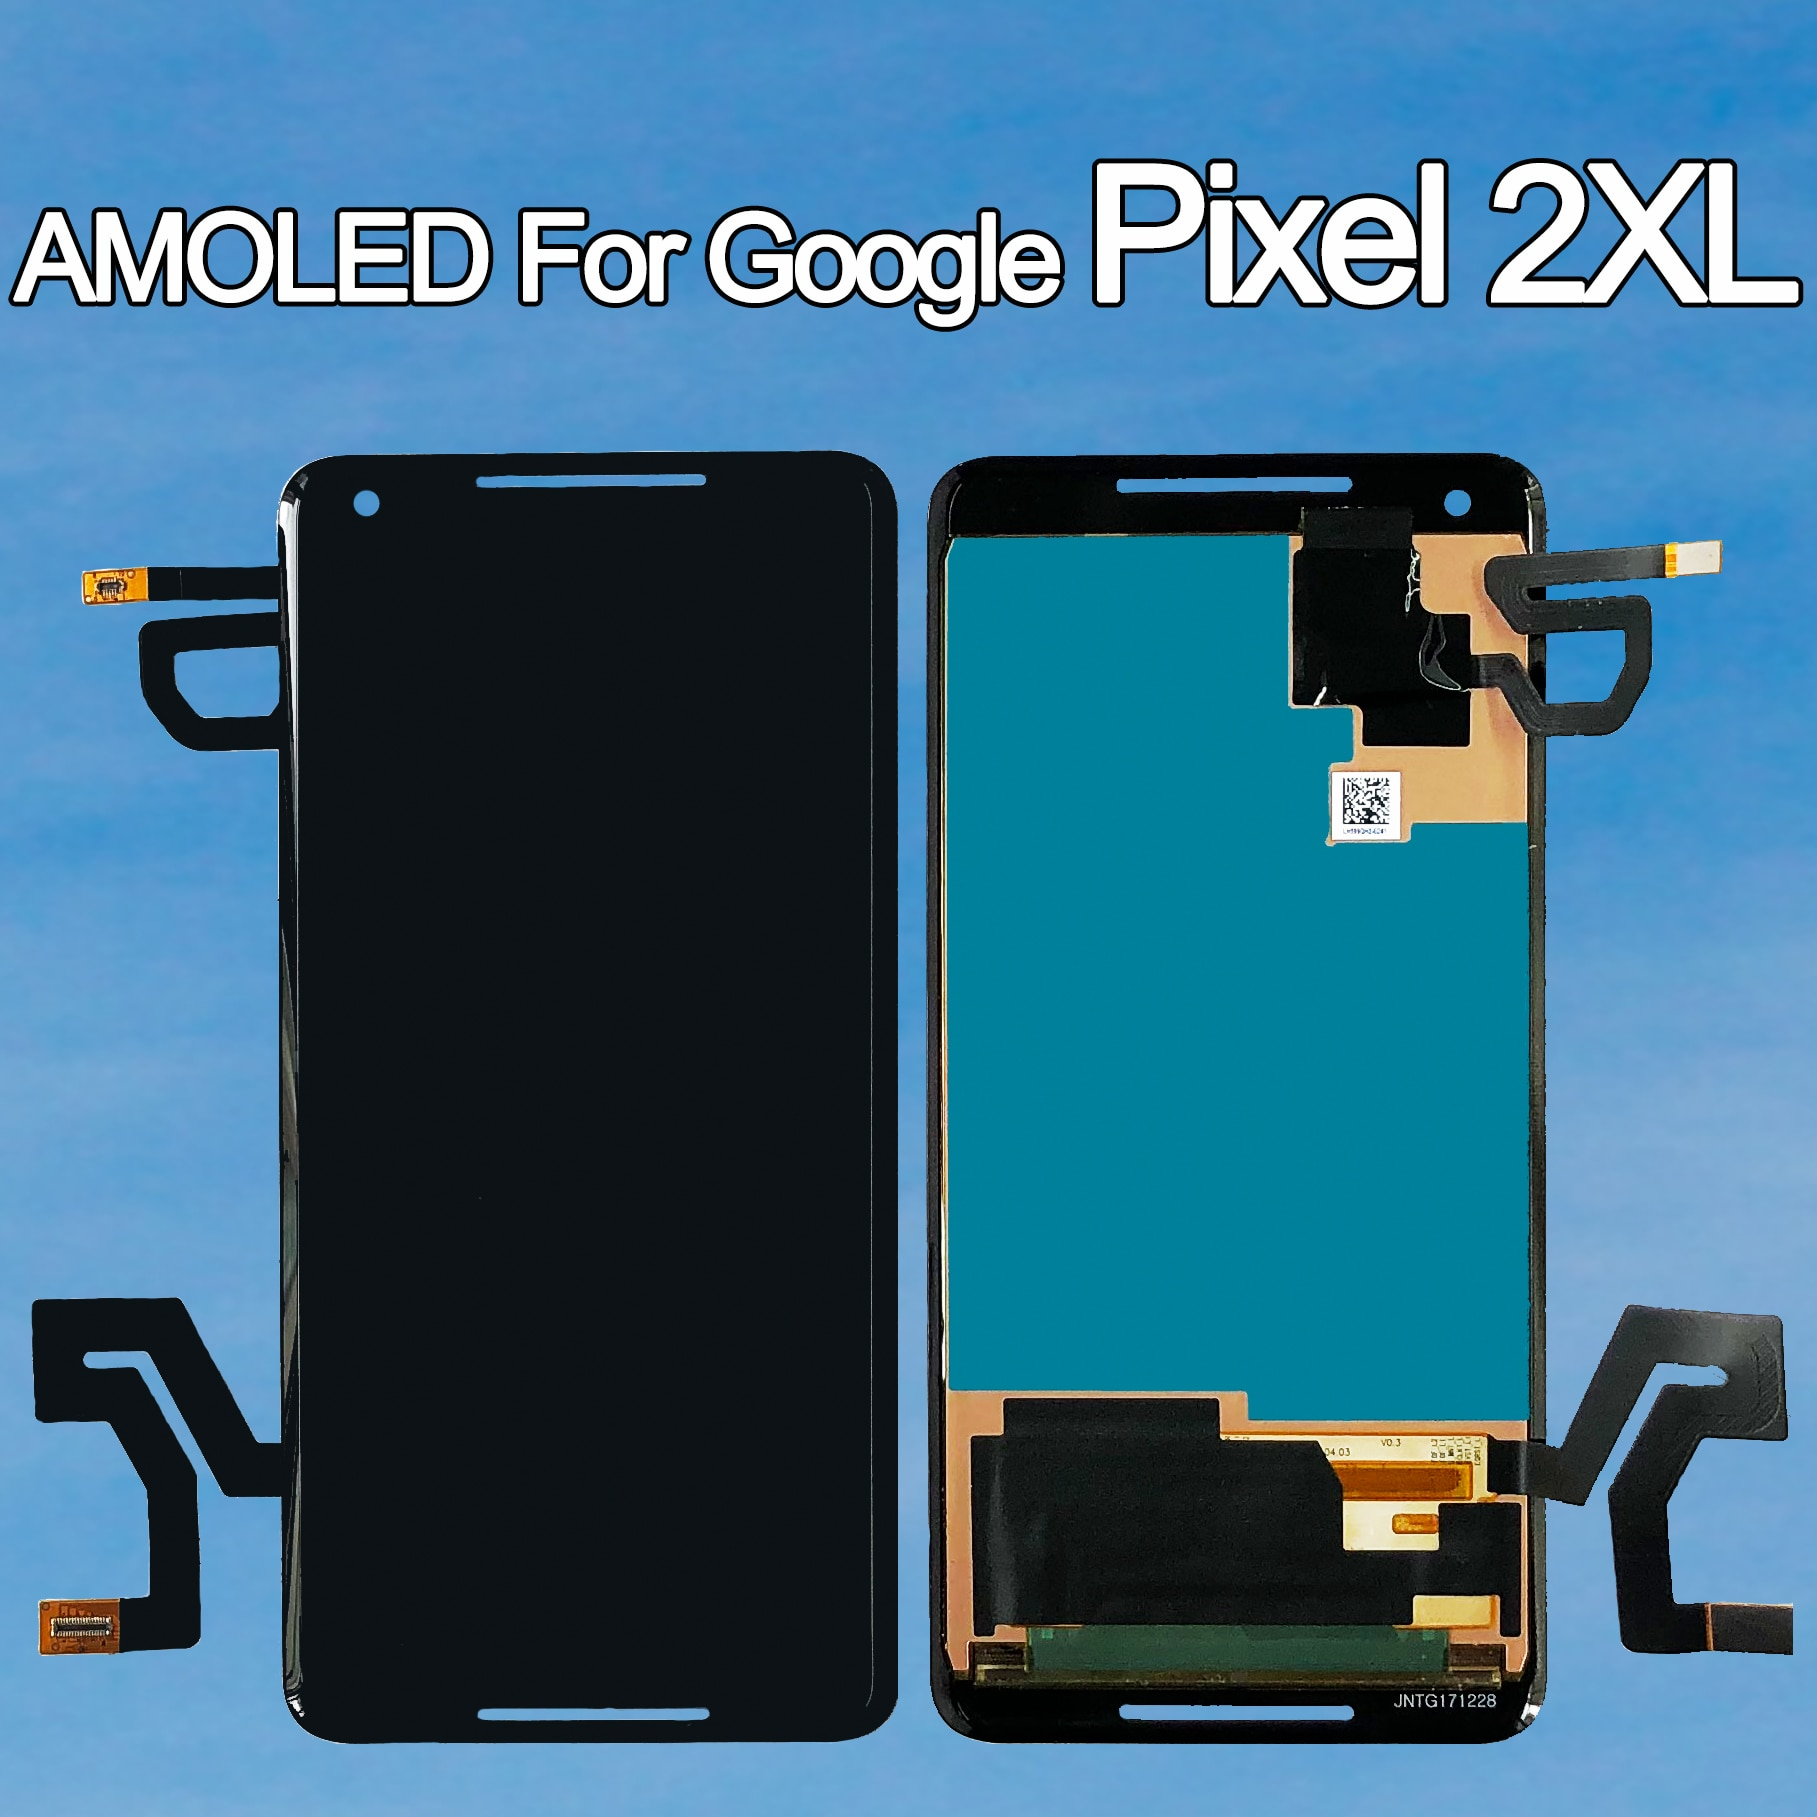 100% Original Amoled For Google Pixel 2 XL LCD Display Touch Screen for Google Pixel2 2XL Digitizer Assembly Replacement Parts enlarge